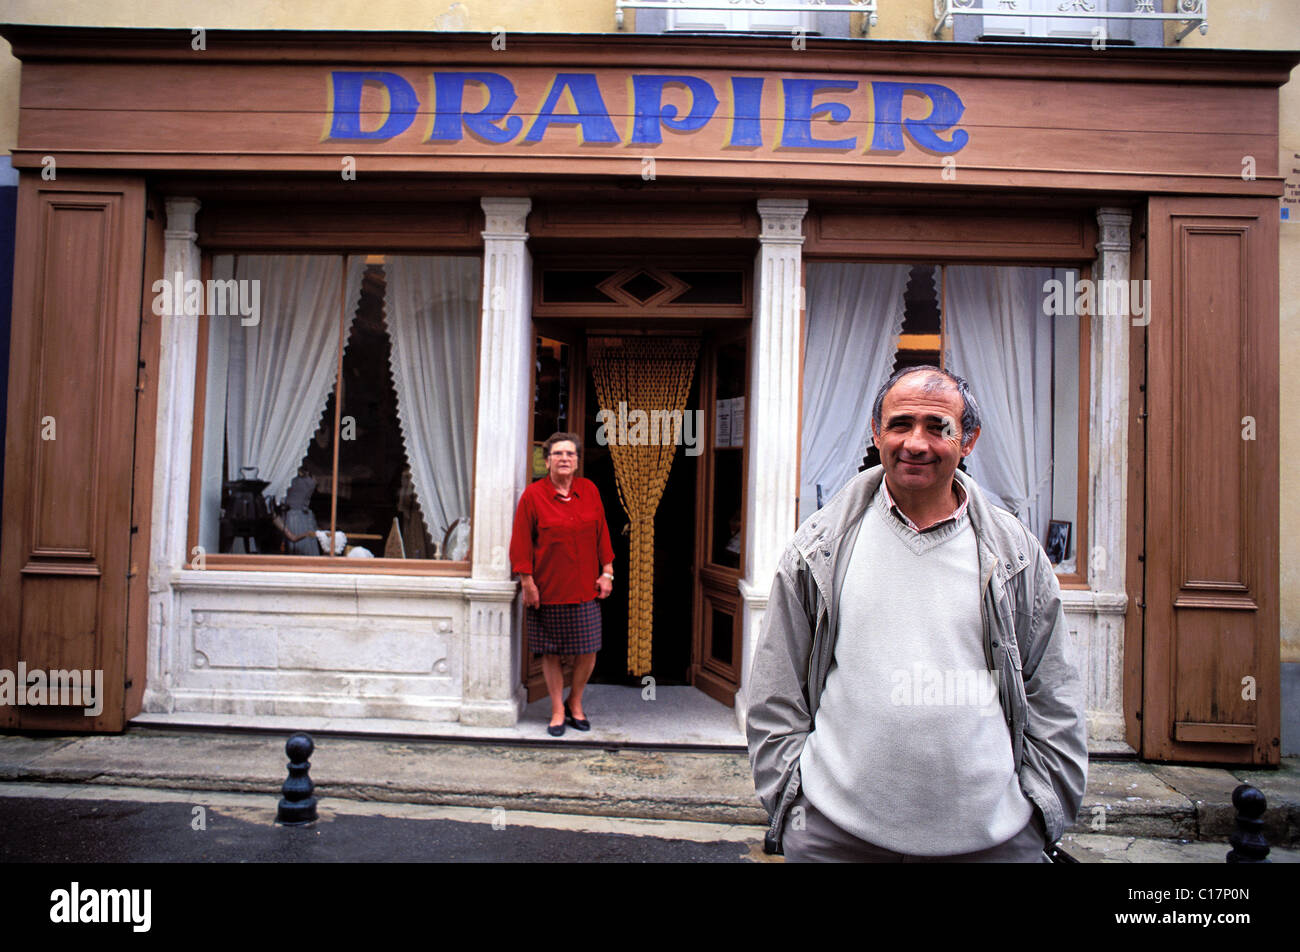 France Vaucluse Pernes les Fontaines mayor mr gabert in front of the former draper shop & now the costume museum - Stock Image